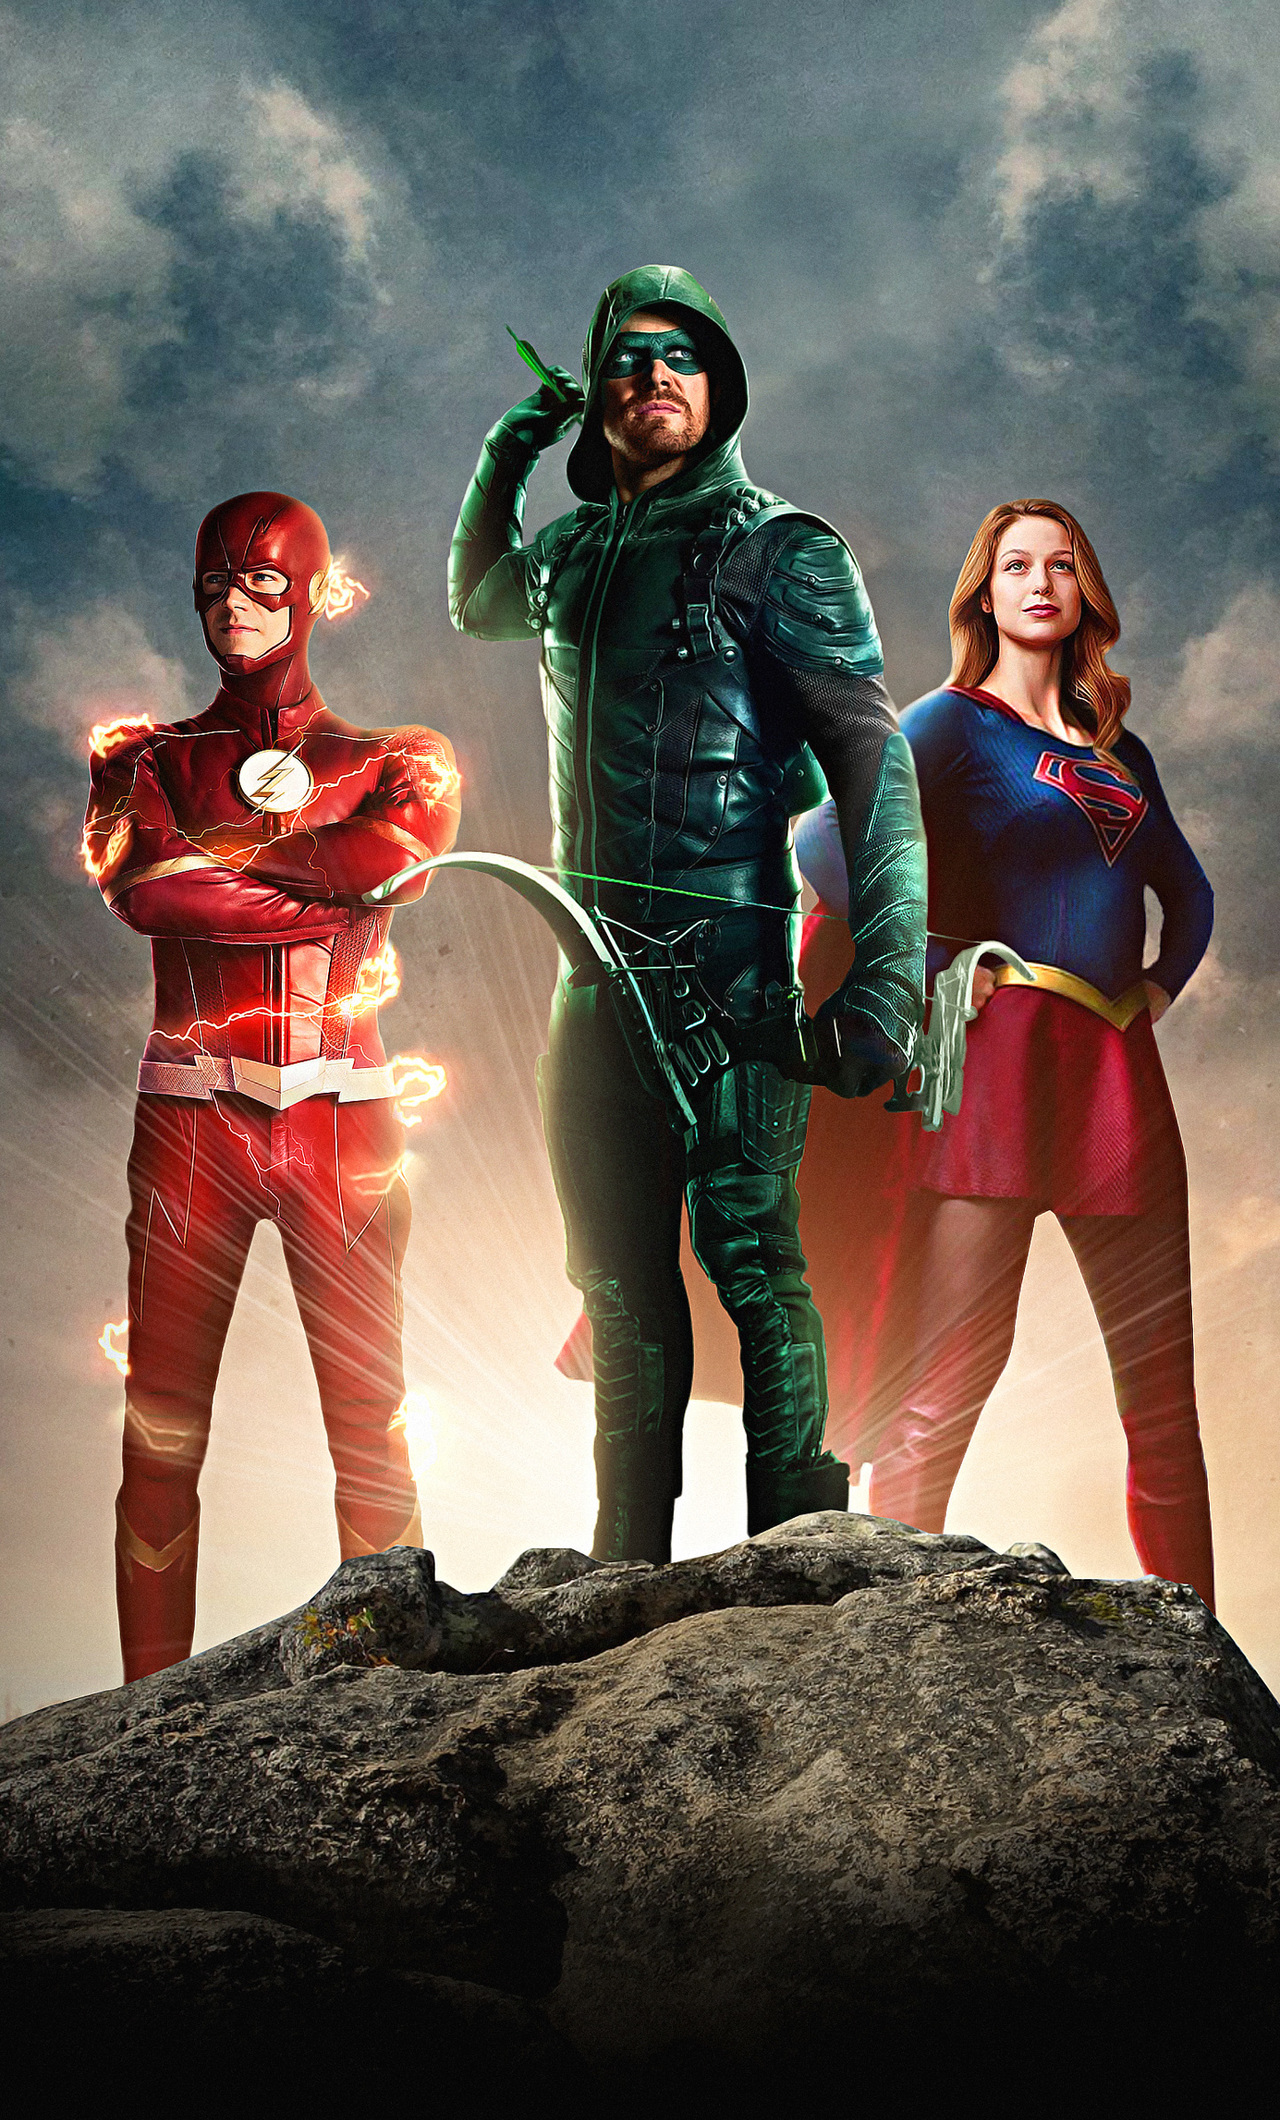 Supergirl And The Flash Wallpapers Wallpaper Cave